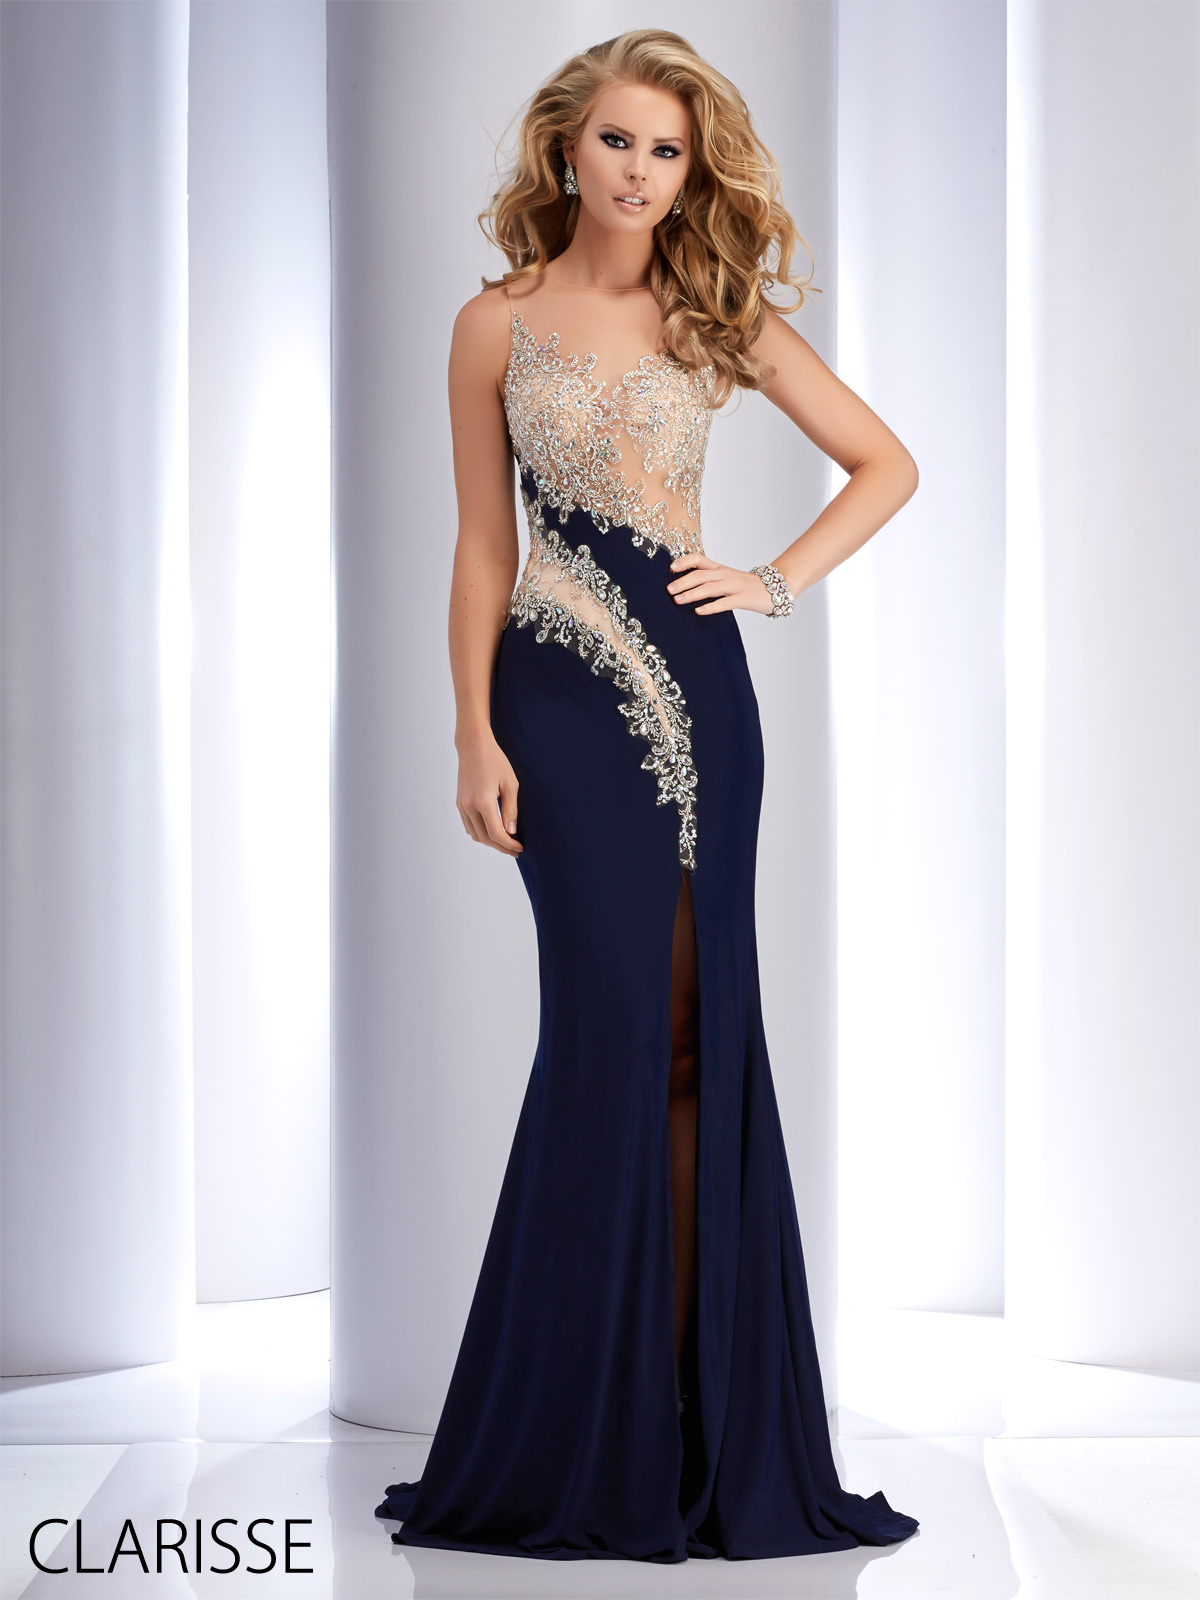 Clarisse couture prom dress style in navy blue and